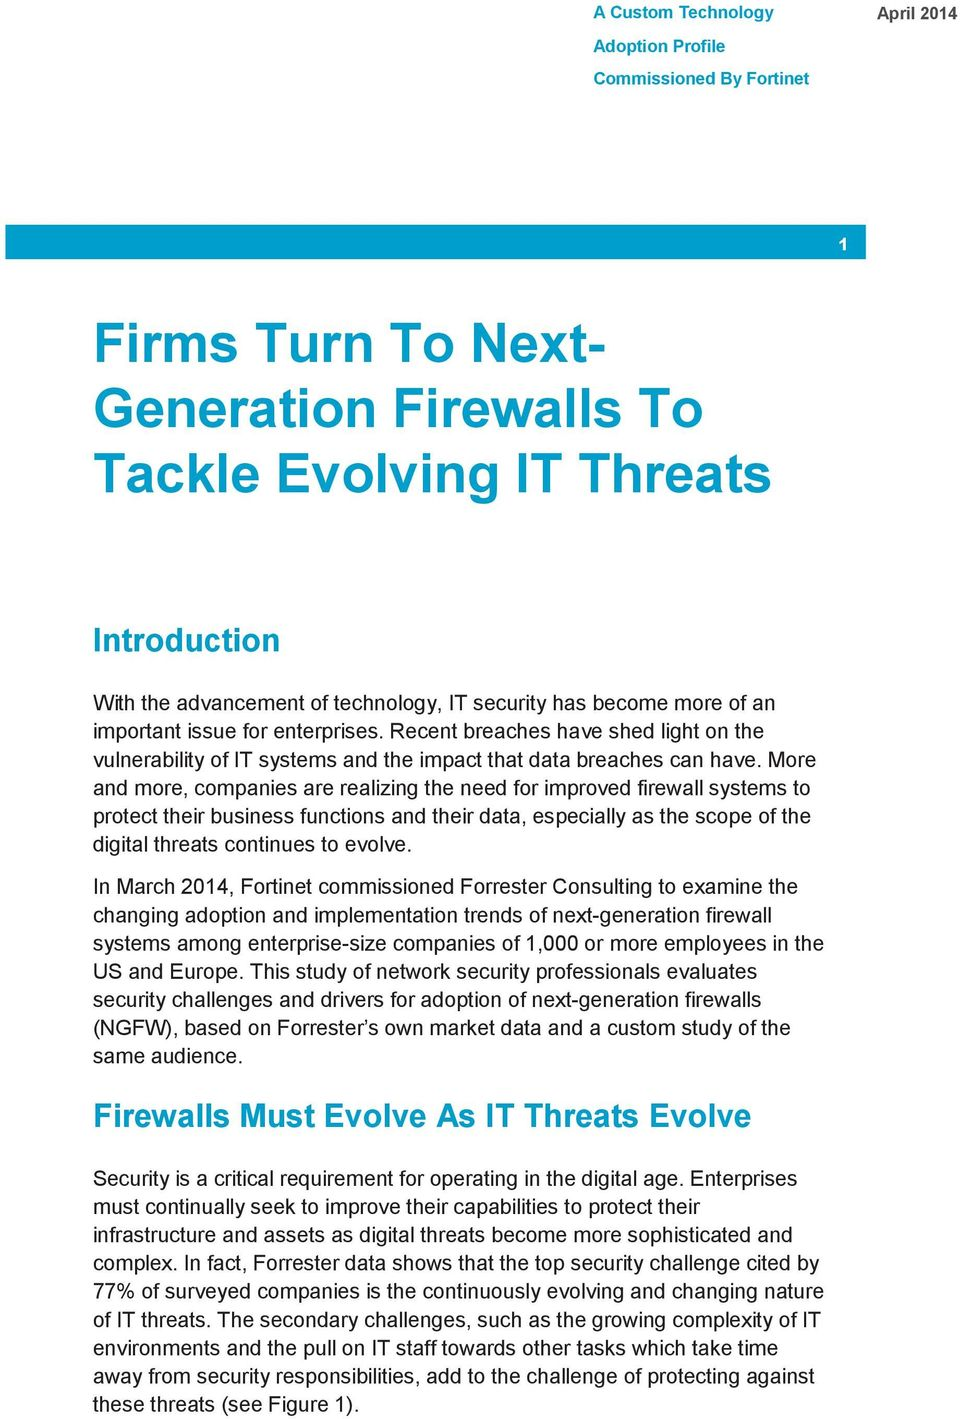 More and more, companies are realizing the need for improved firewall systems to protect their business functions and their data, especially as the scope of the digital threats continues to evolve.